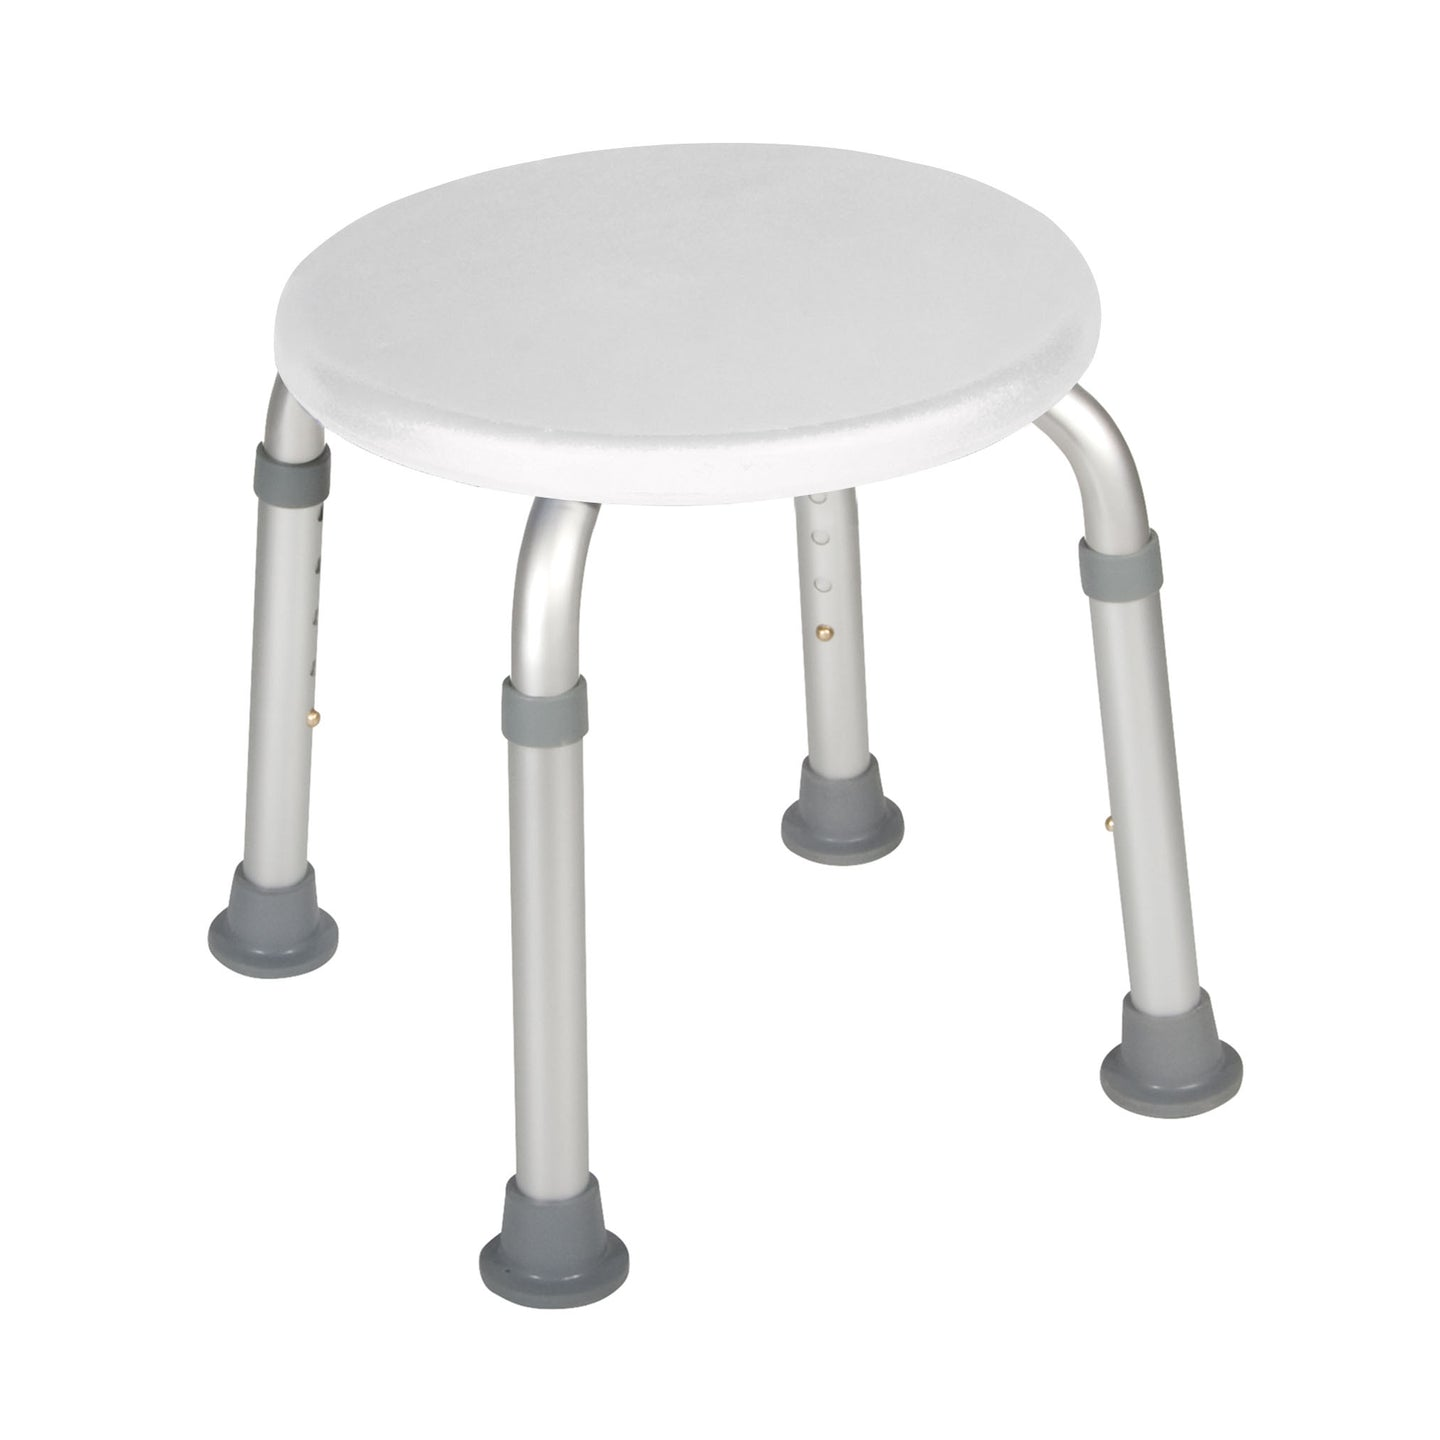 Drive Adjustable Height Bath Stool- White